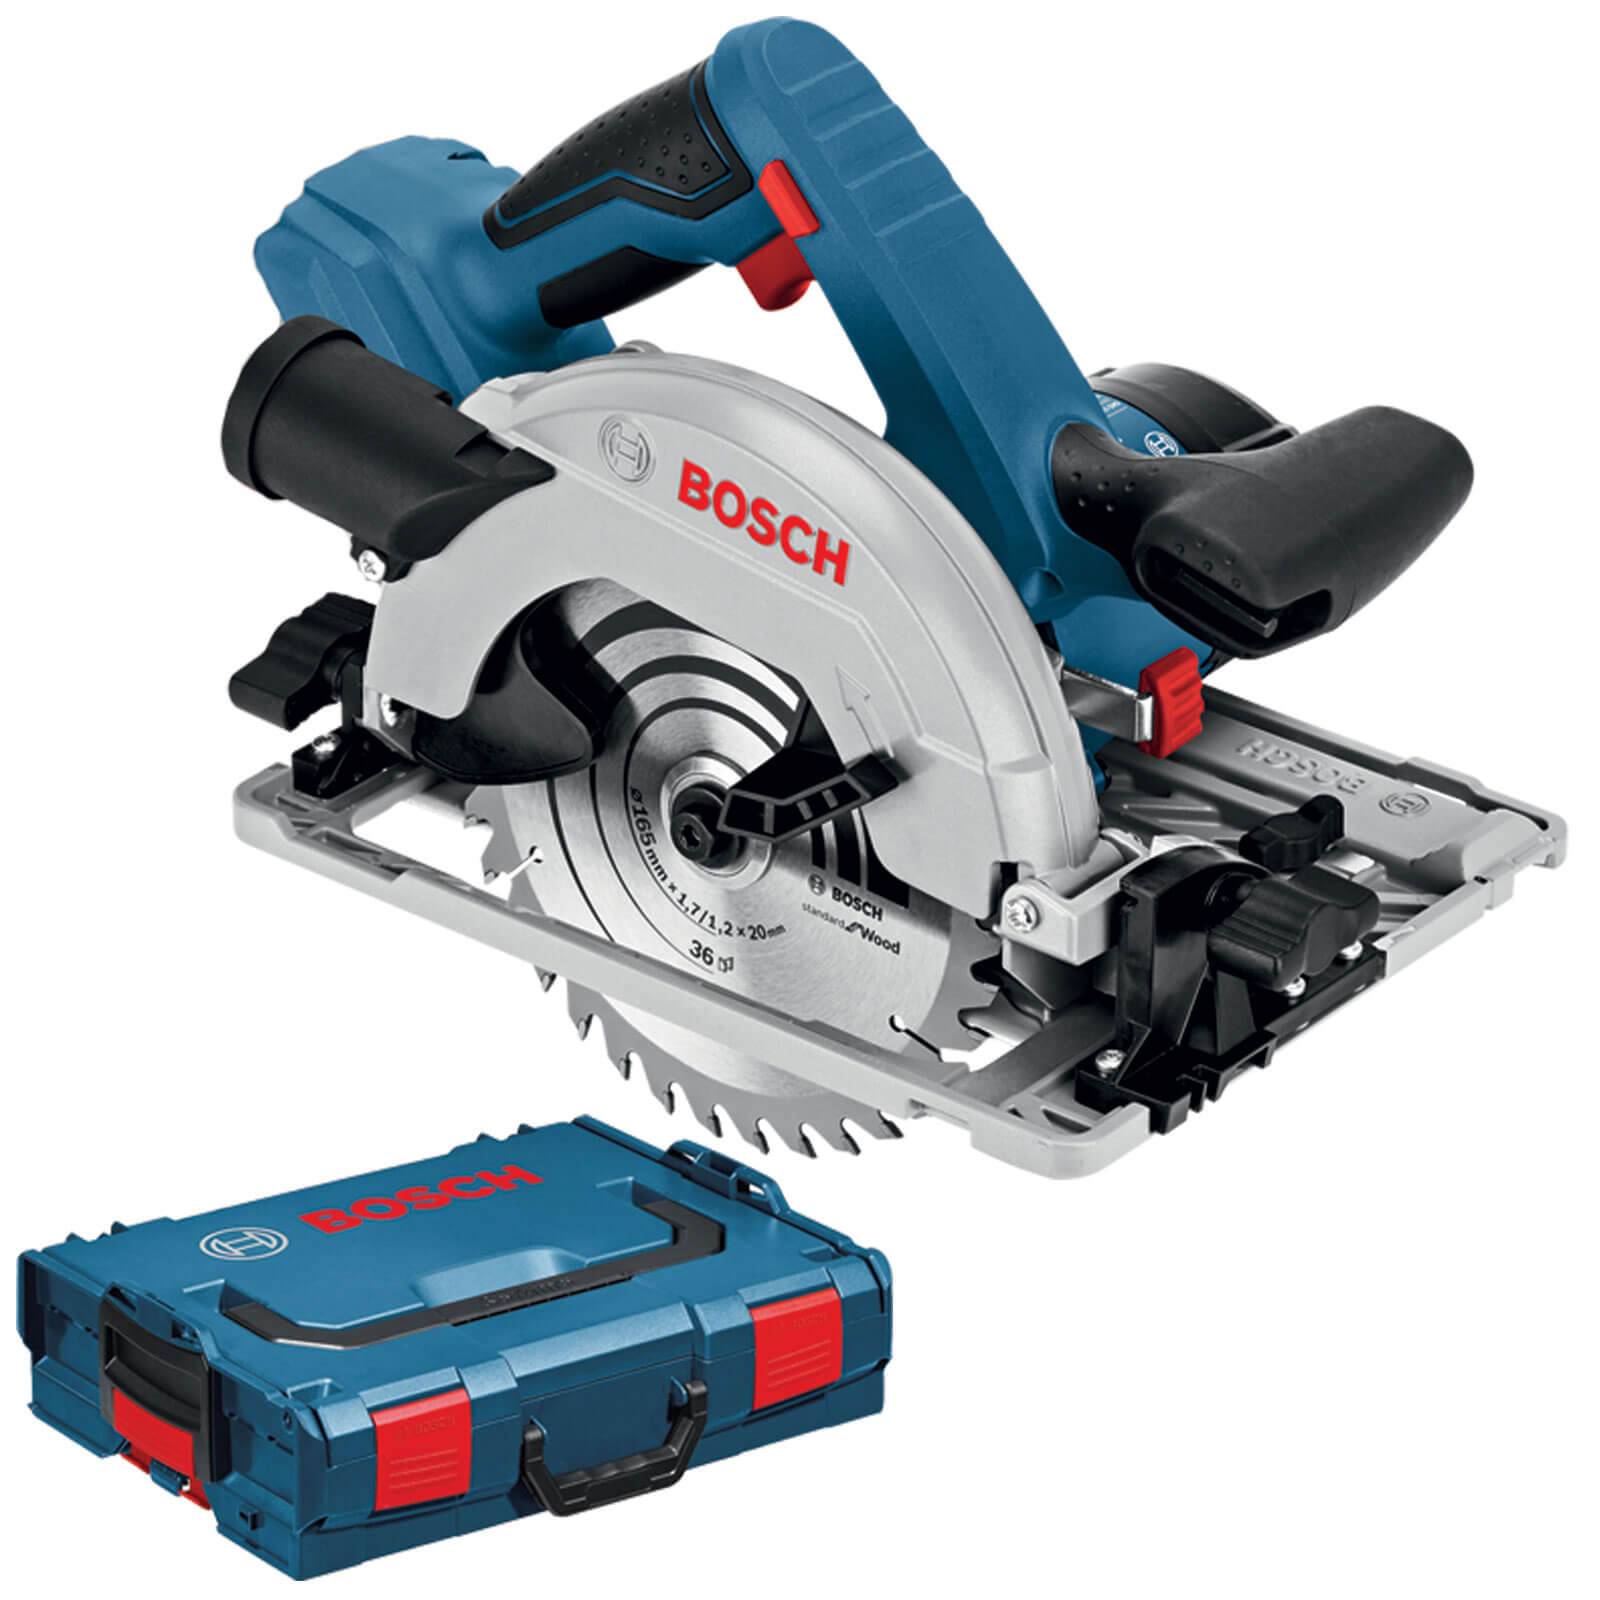 Image of Bosch GKS 18 V-57 Cordless Circular Saw No Batteries No Charger Case